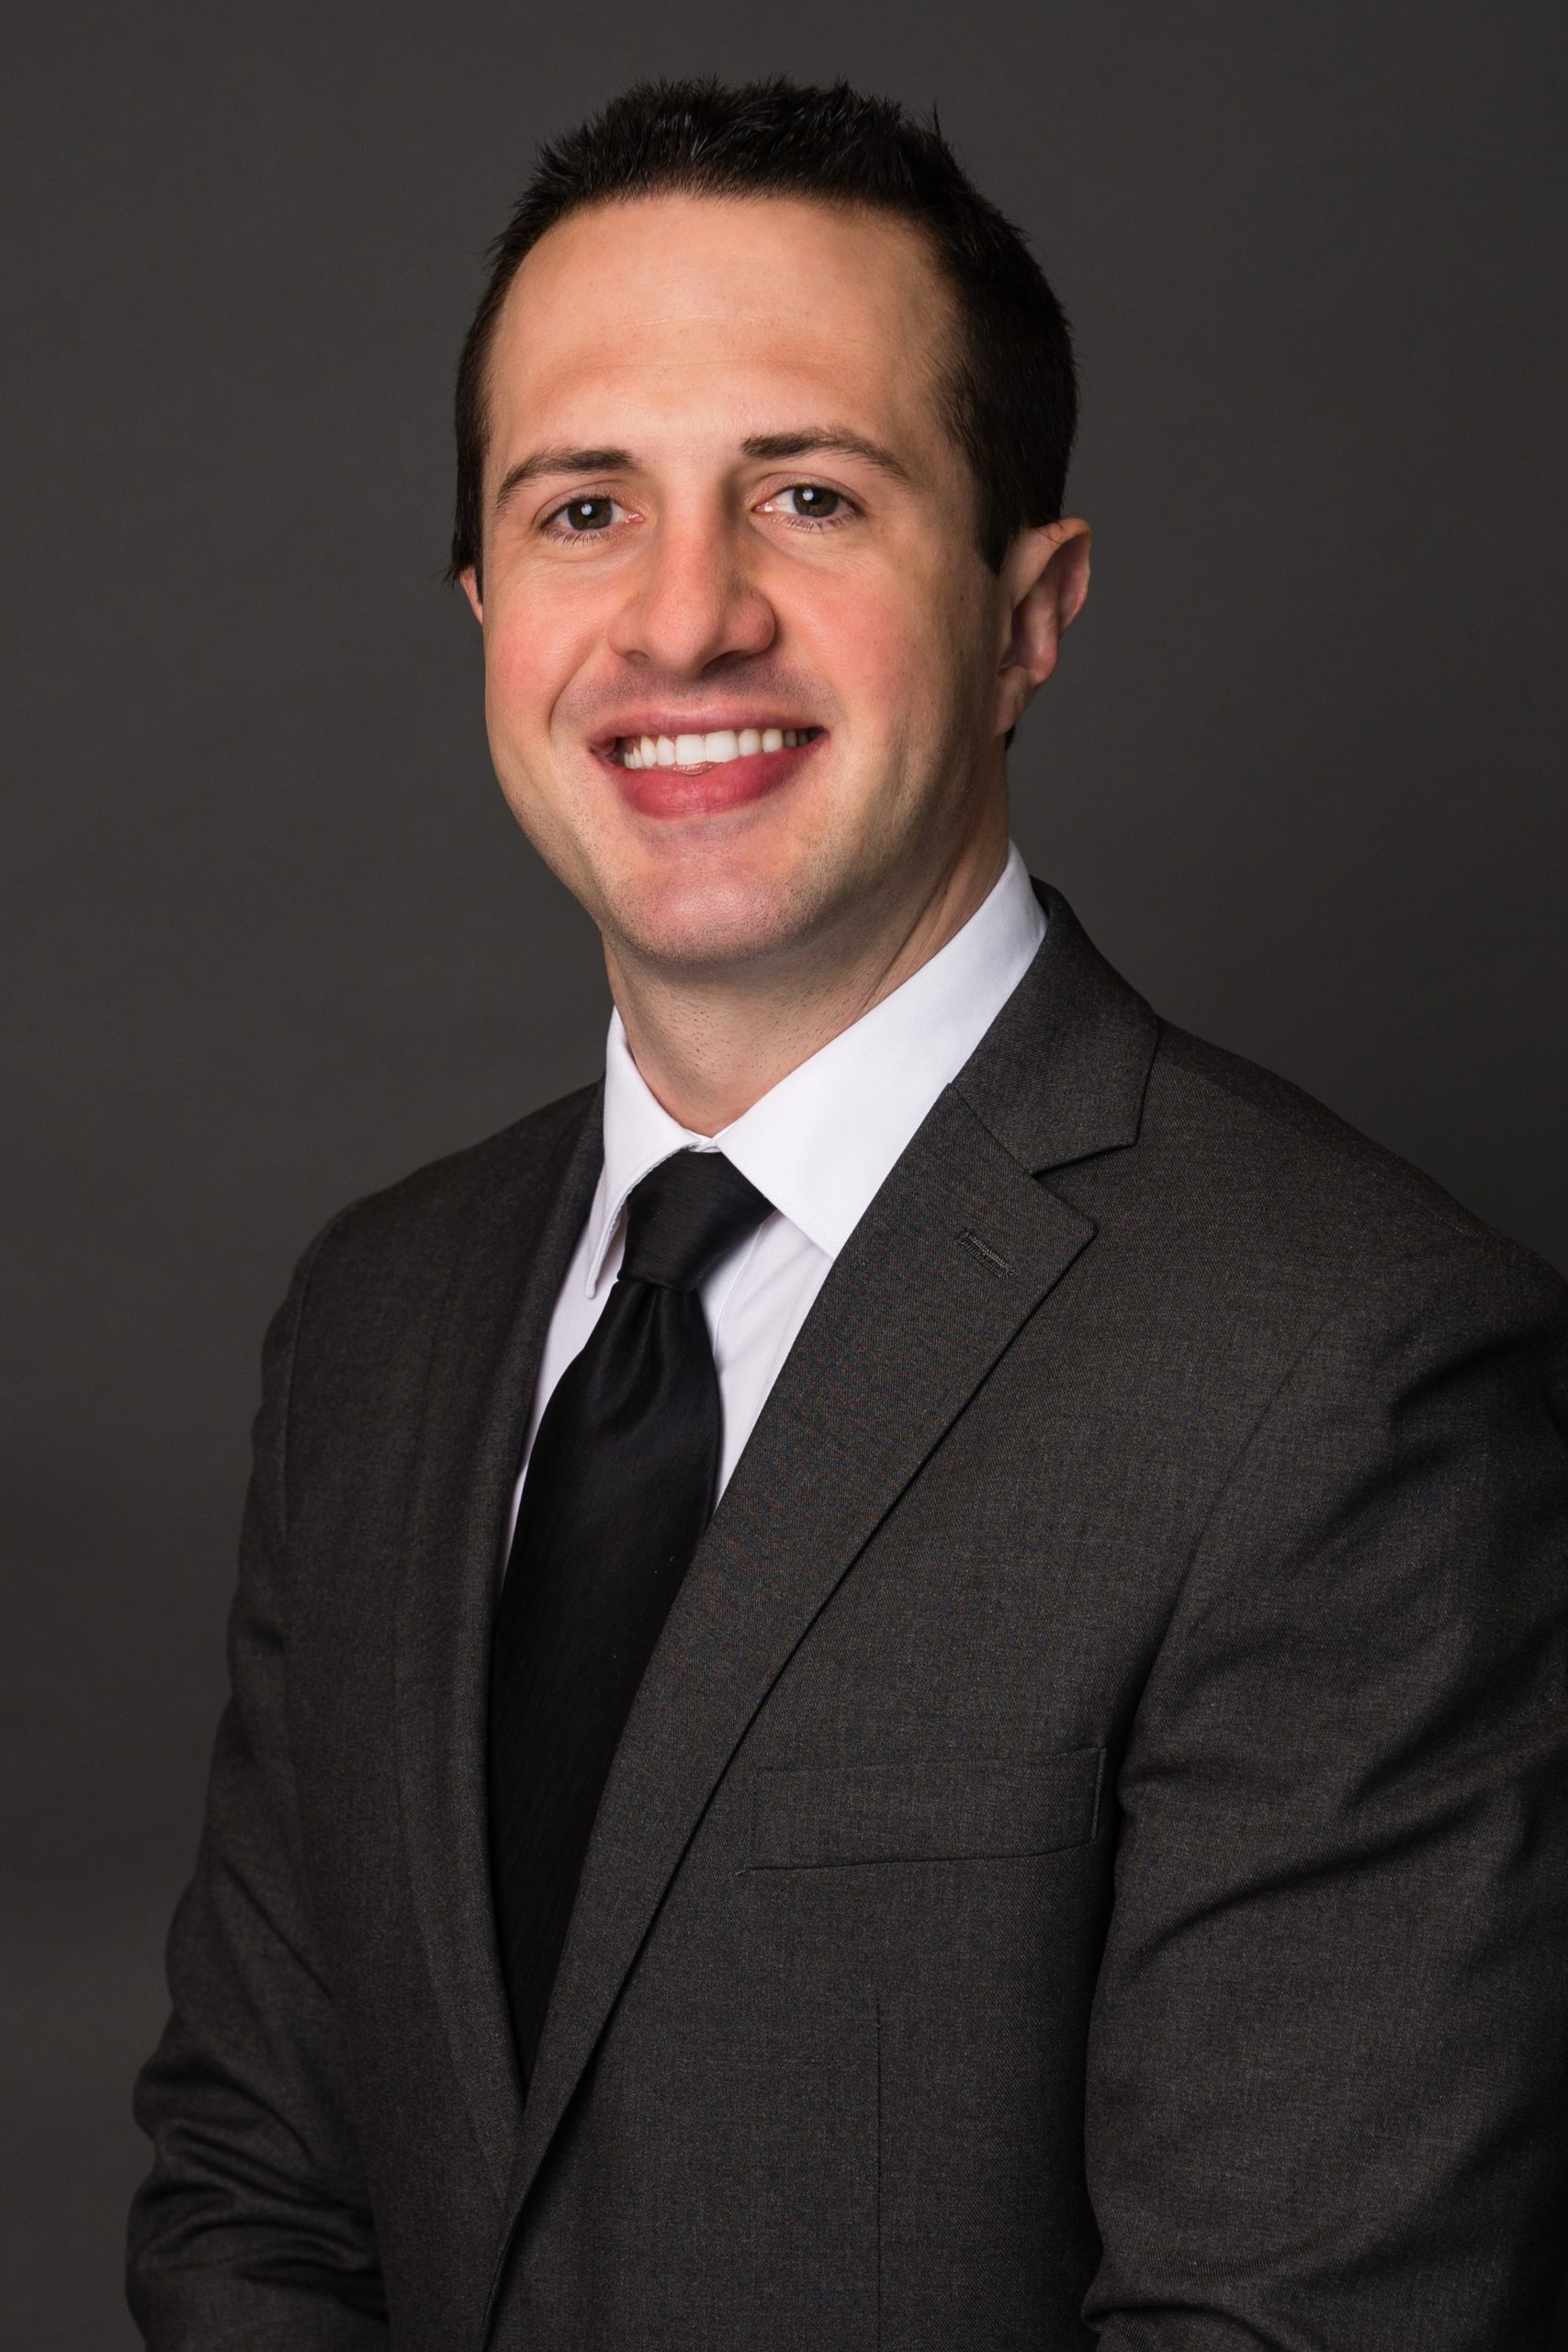 a man wearing a suit and tie smiling at the camera